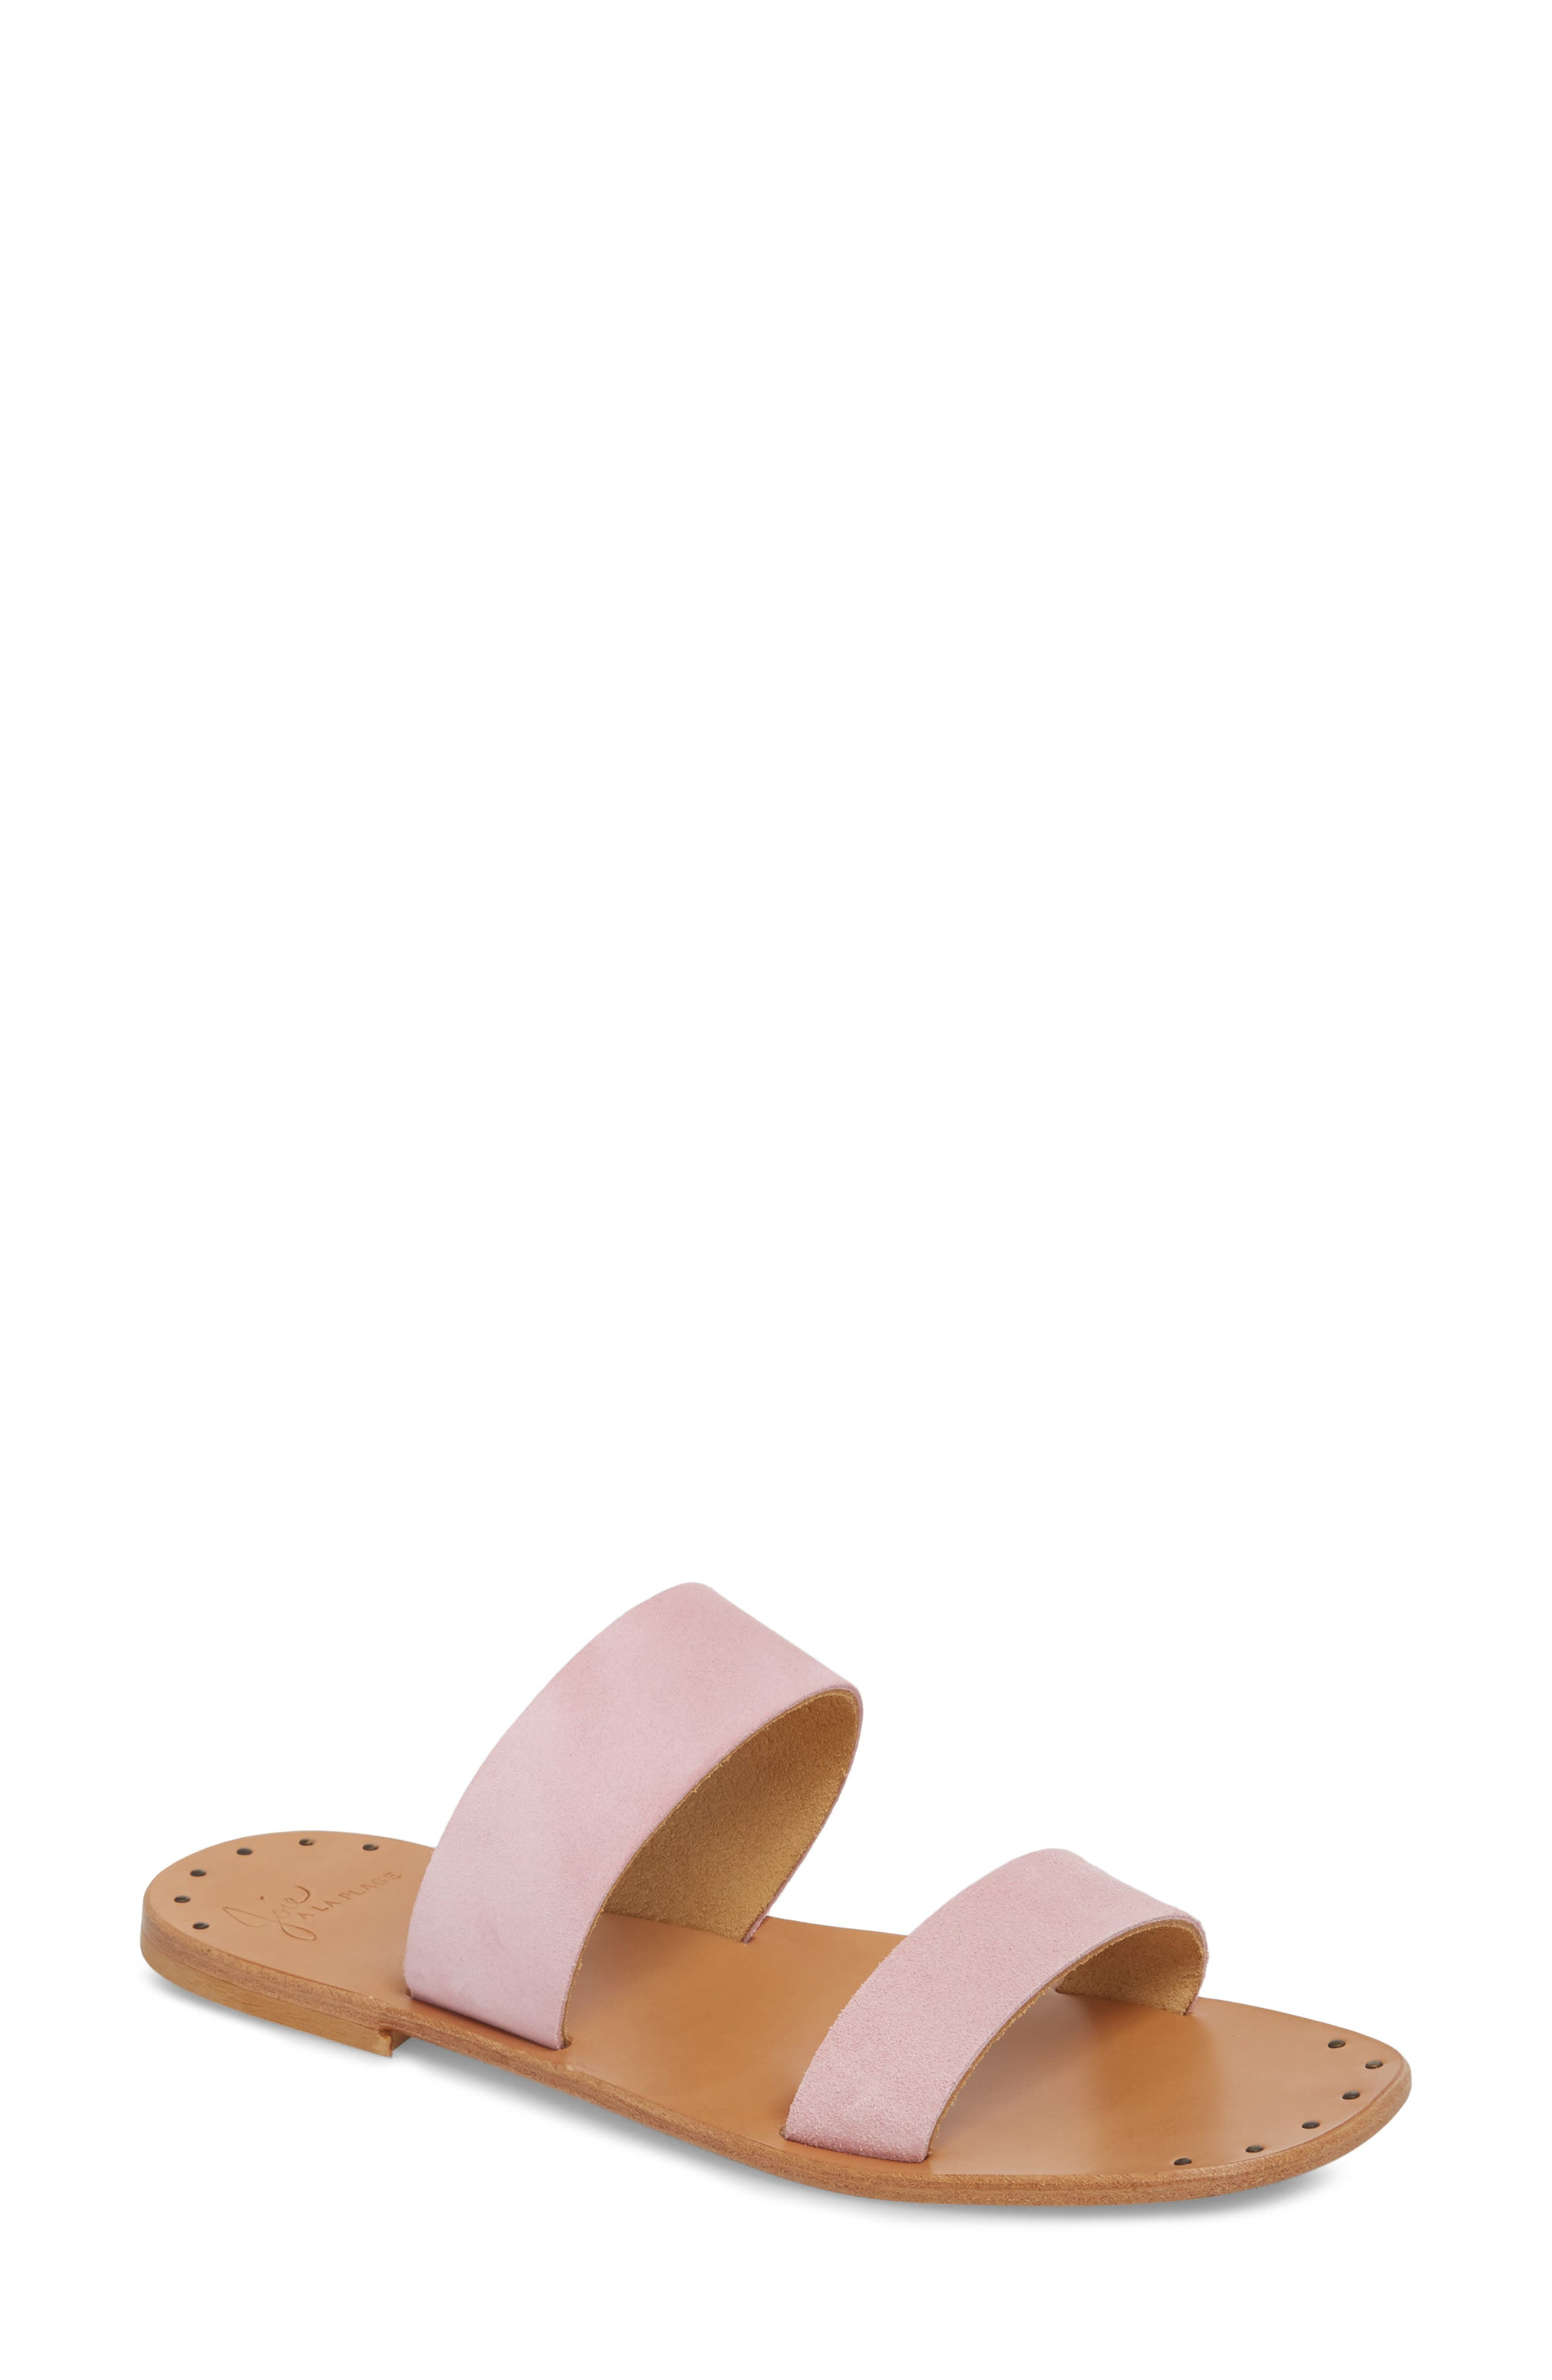 Joie Bannerly Strappy Sandal (Women)